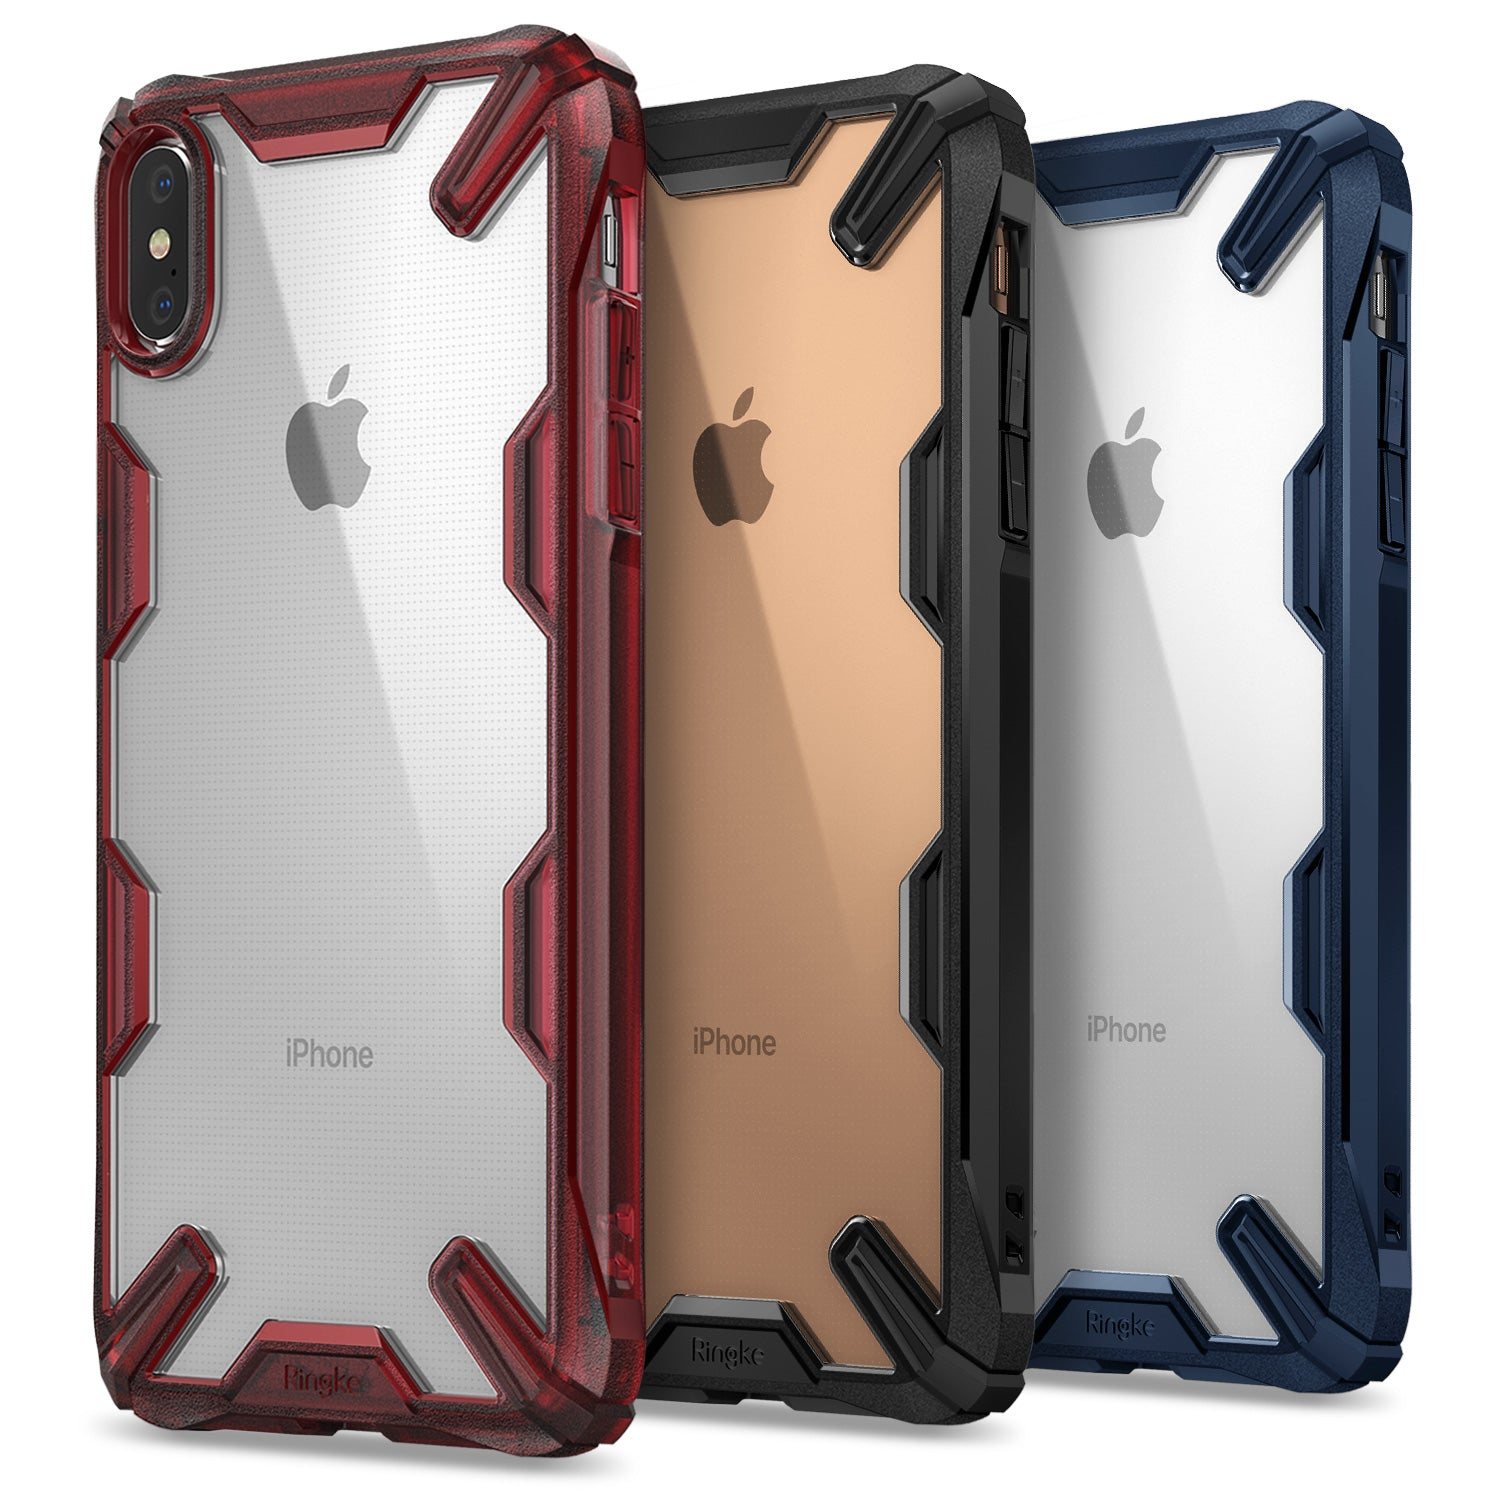 iPhone XS Max Case | Ringke Fusion-X